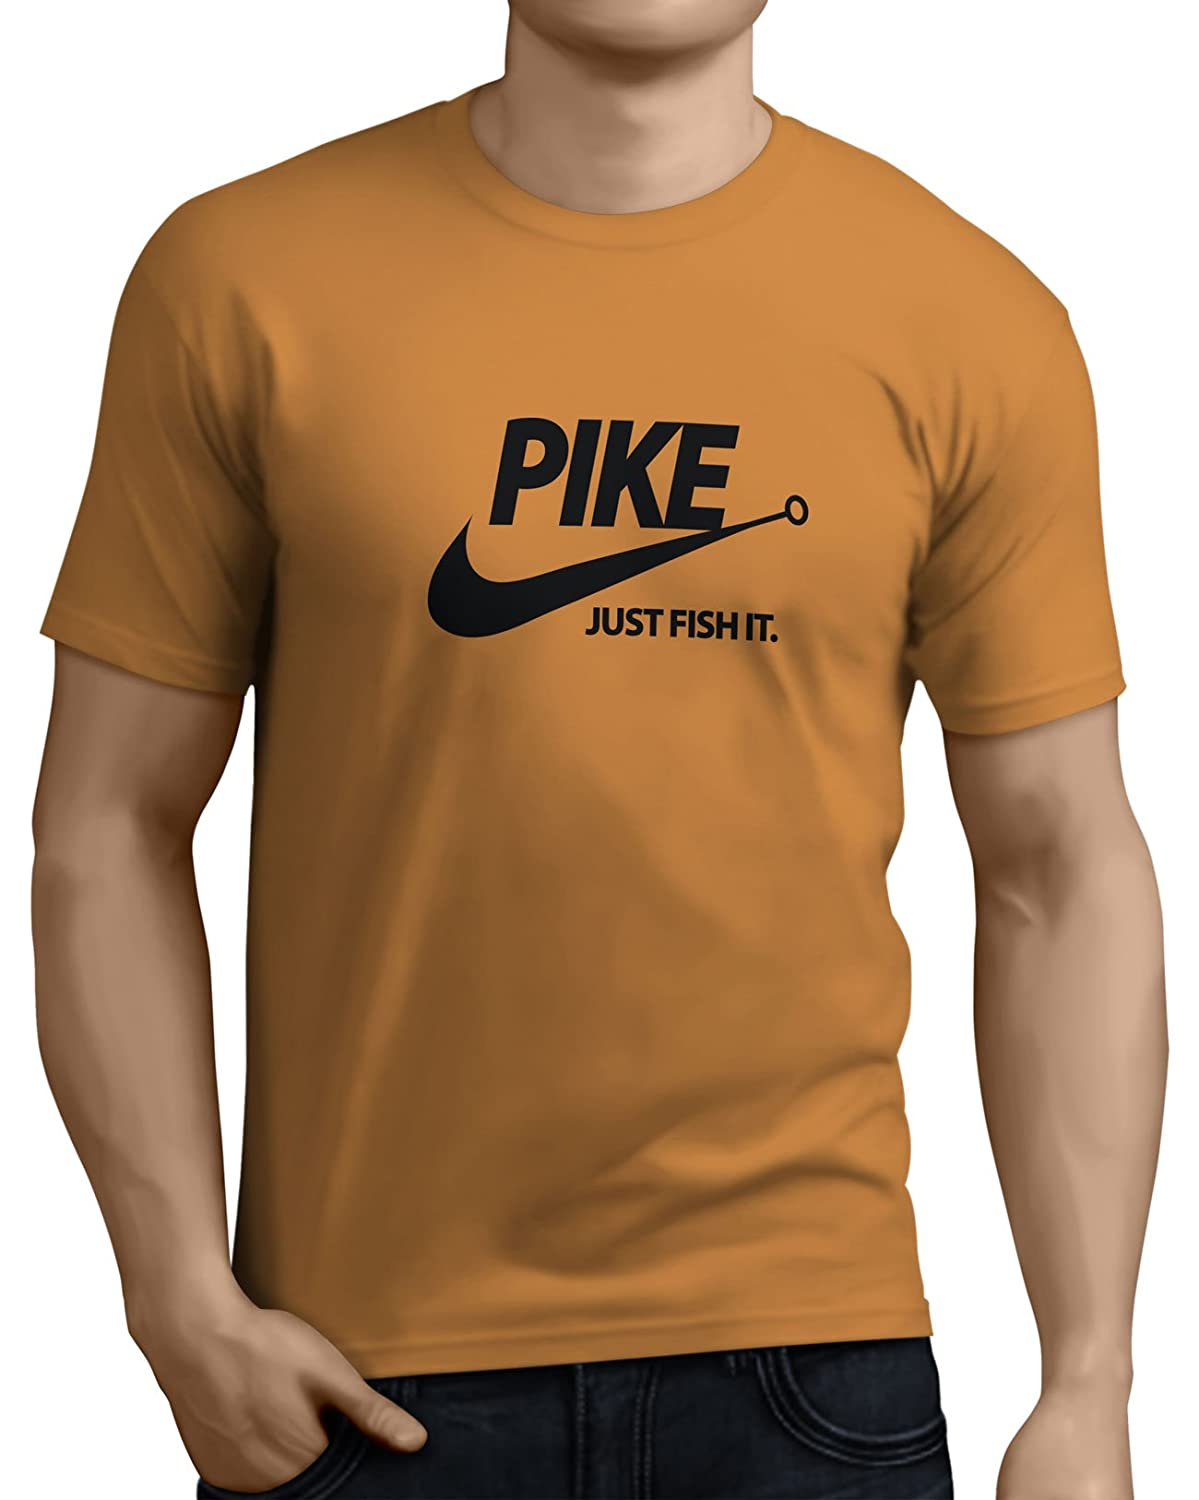 b9b2fff0 Pike Just Fish It Mens Funny Pike Fishing T-Shirt 14 Colors Sizes Small to  XX-Large by Total-tees.: Amazon.co.uk: Clothing